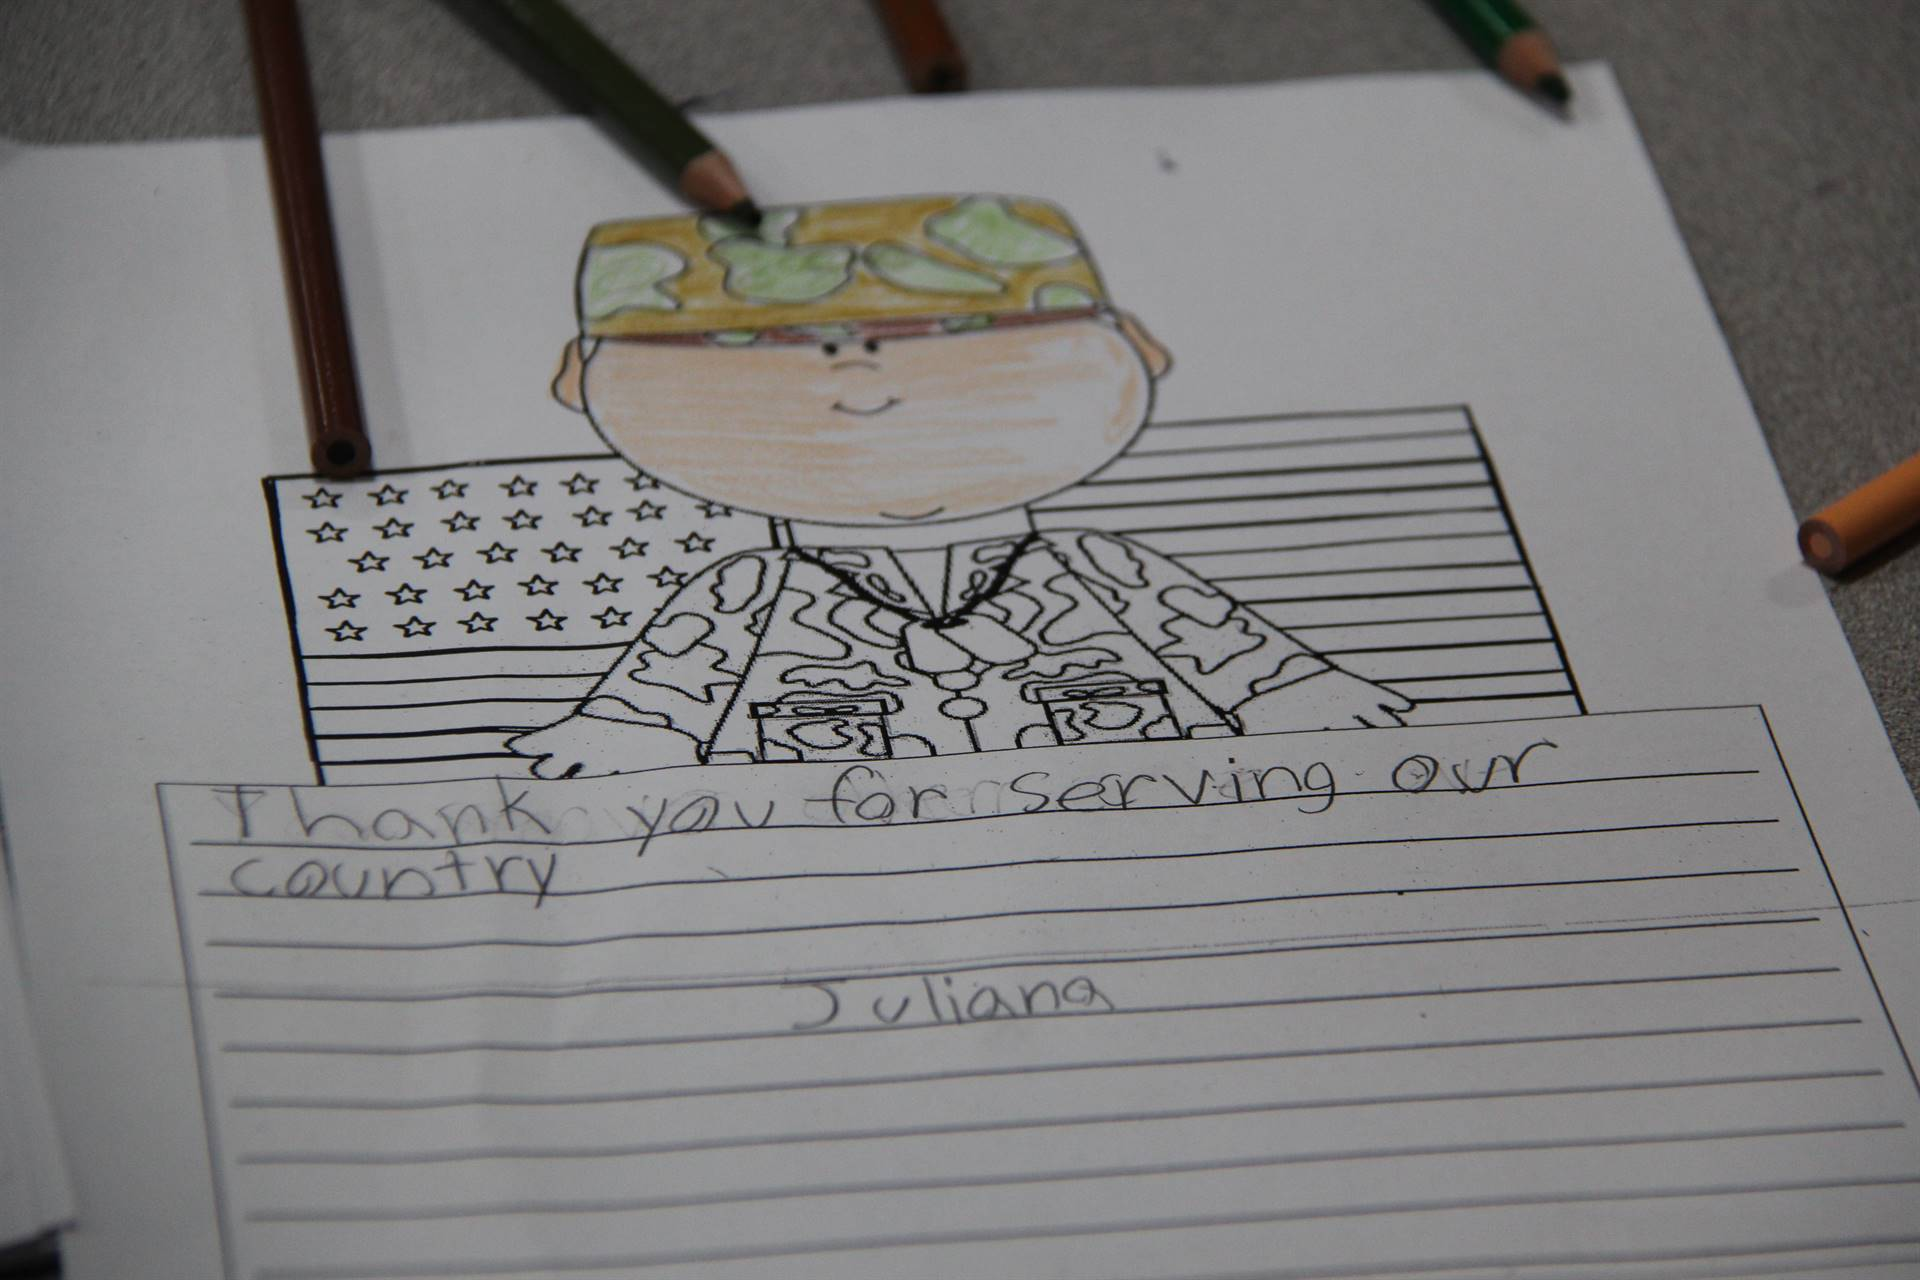 colored in letter of military member that says thank you for serving our country